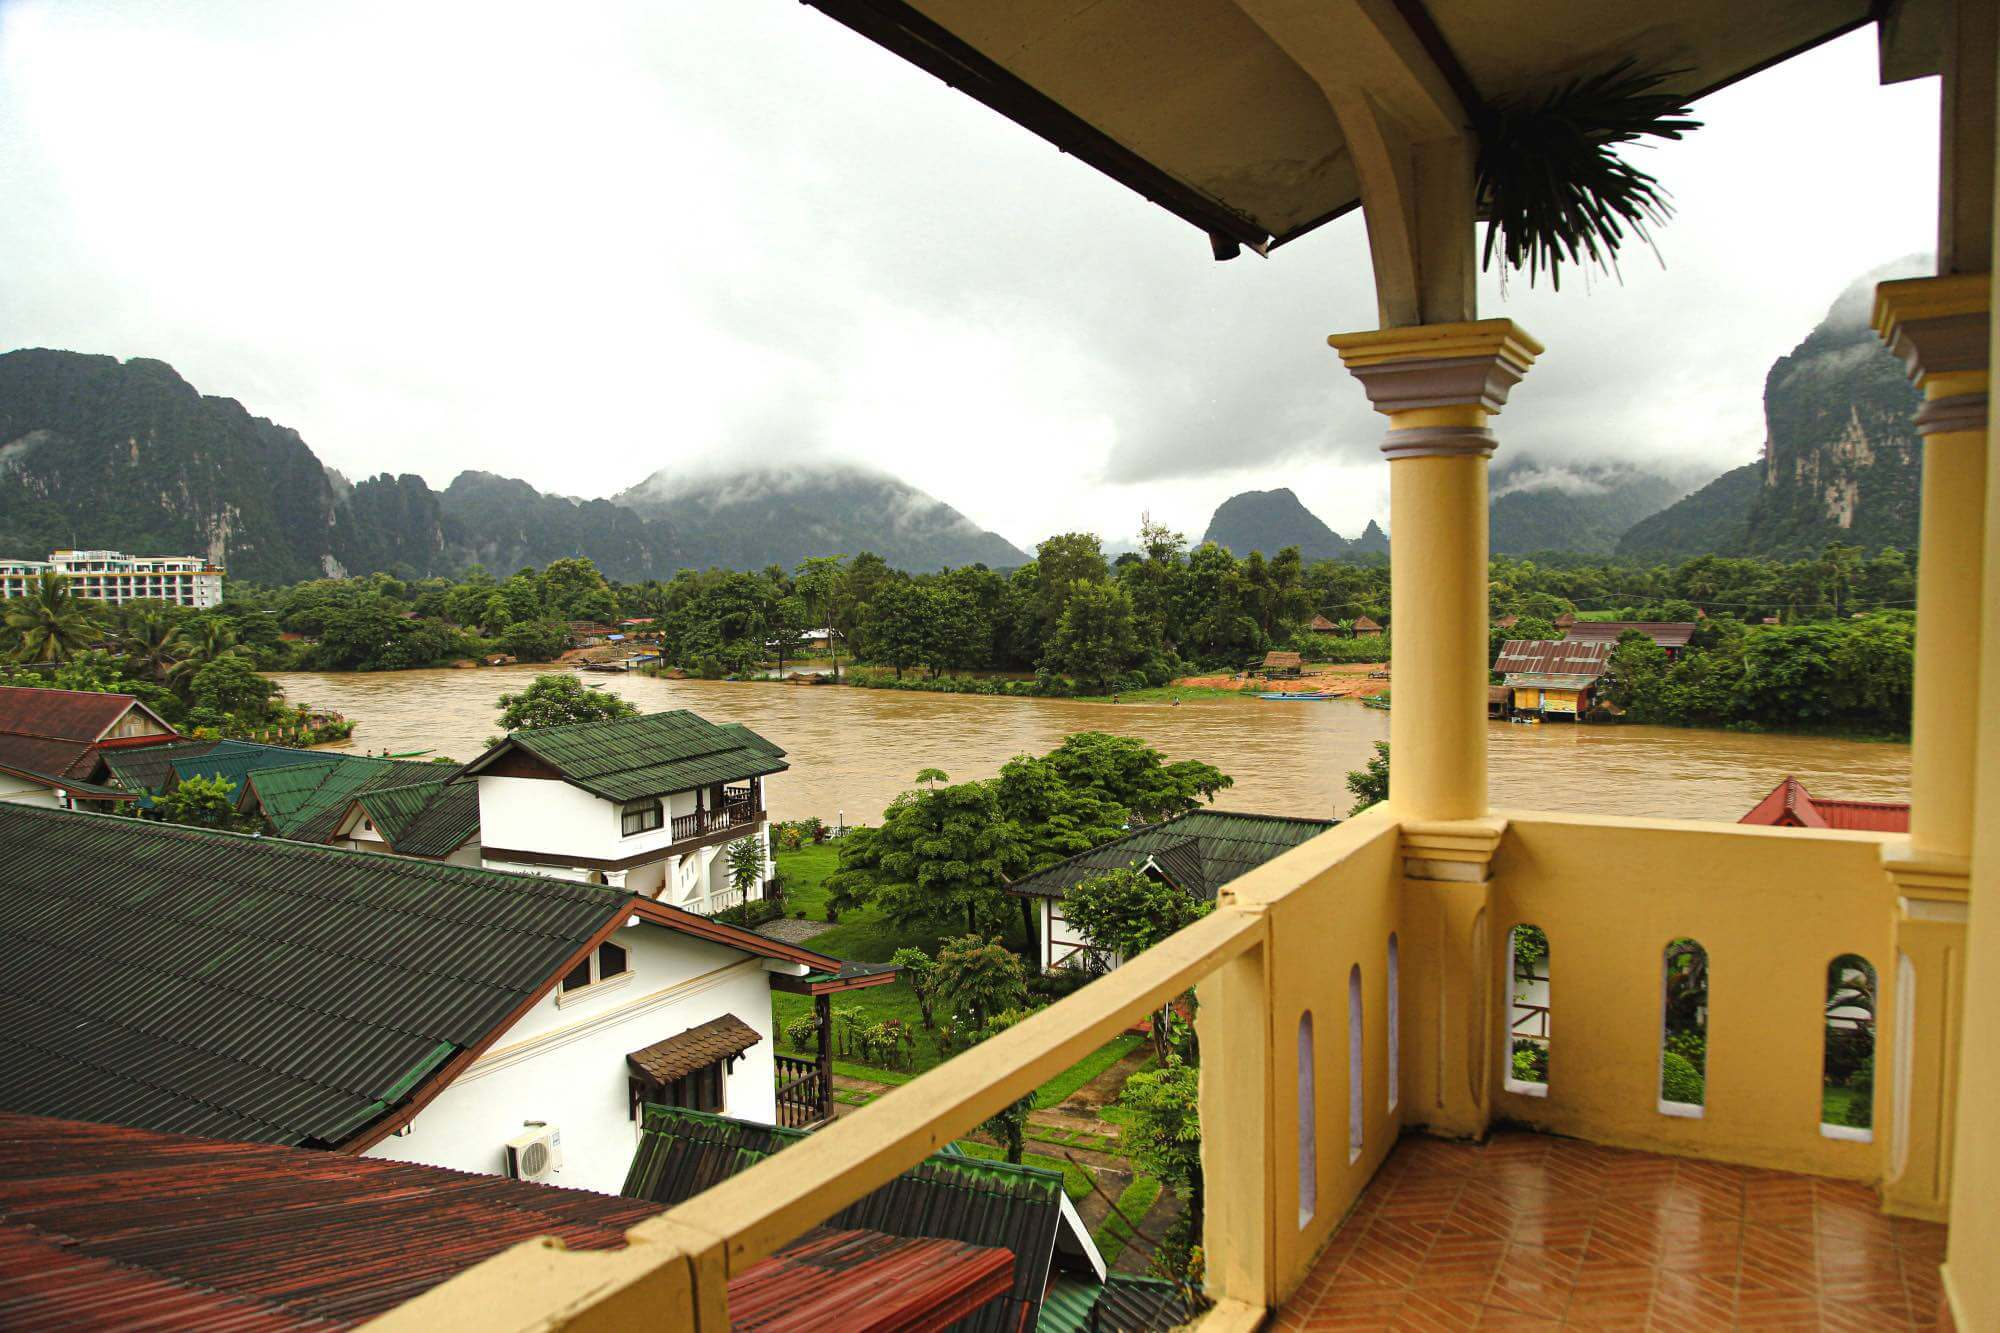 View of the river in Vang Vieng Laos